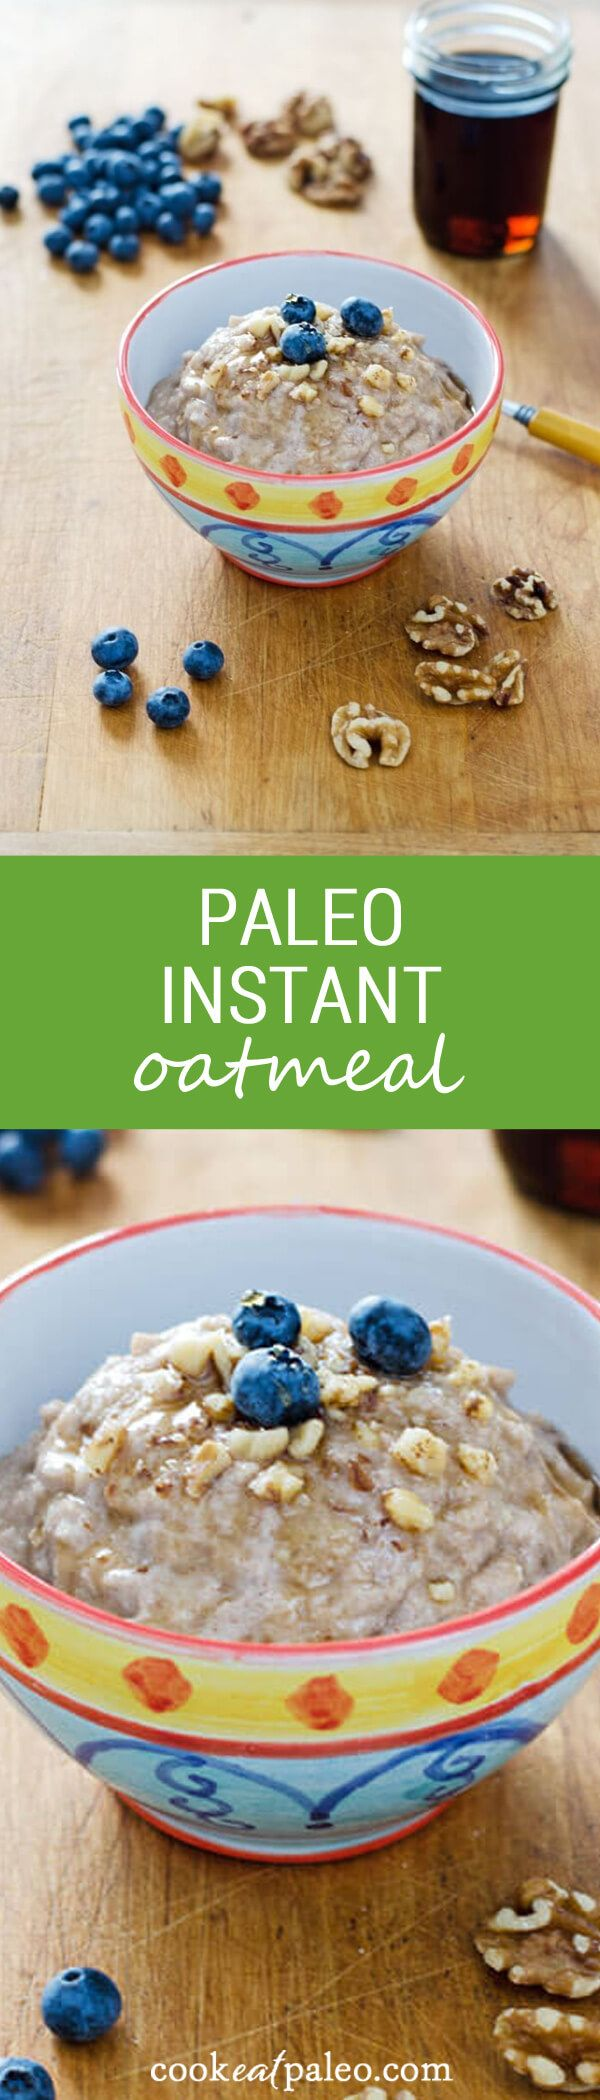 """Paleo """"instant oatmeal"""" recipe — 1 bowl, 5 ingredients, 5 minutes. It's gluten-free, grain-free, dairy-free, and refined sugar-free."""